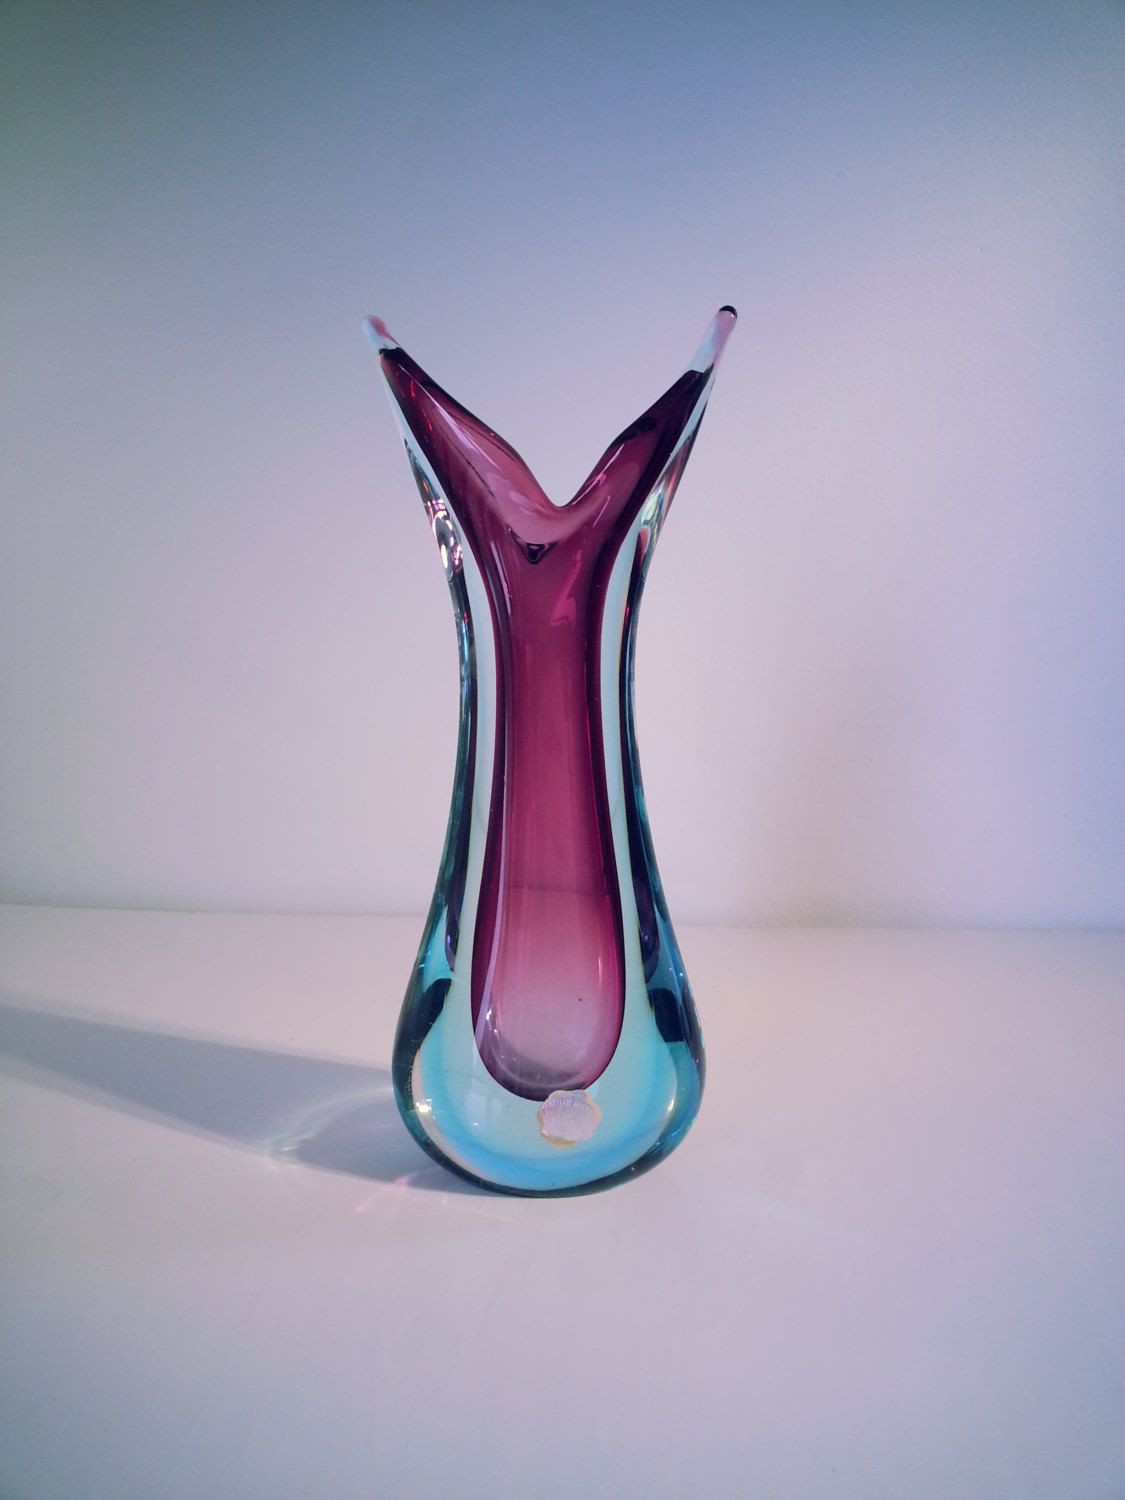 teardrop wall vase of murano sommerso genuine venetian glass 1950s 1960s purple blue for murano sommerso genuine venetian glass 1950s 1960s purple blue glass vase pulled design vase made in italy by fcollectables on etsy